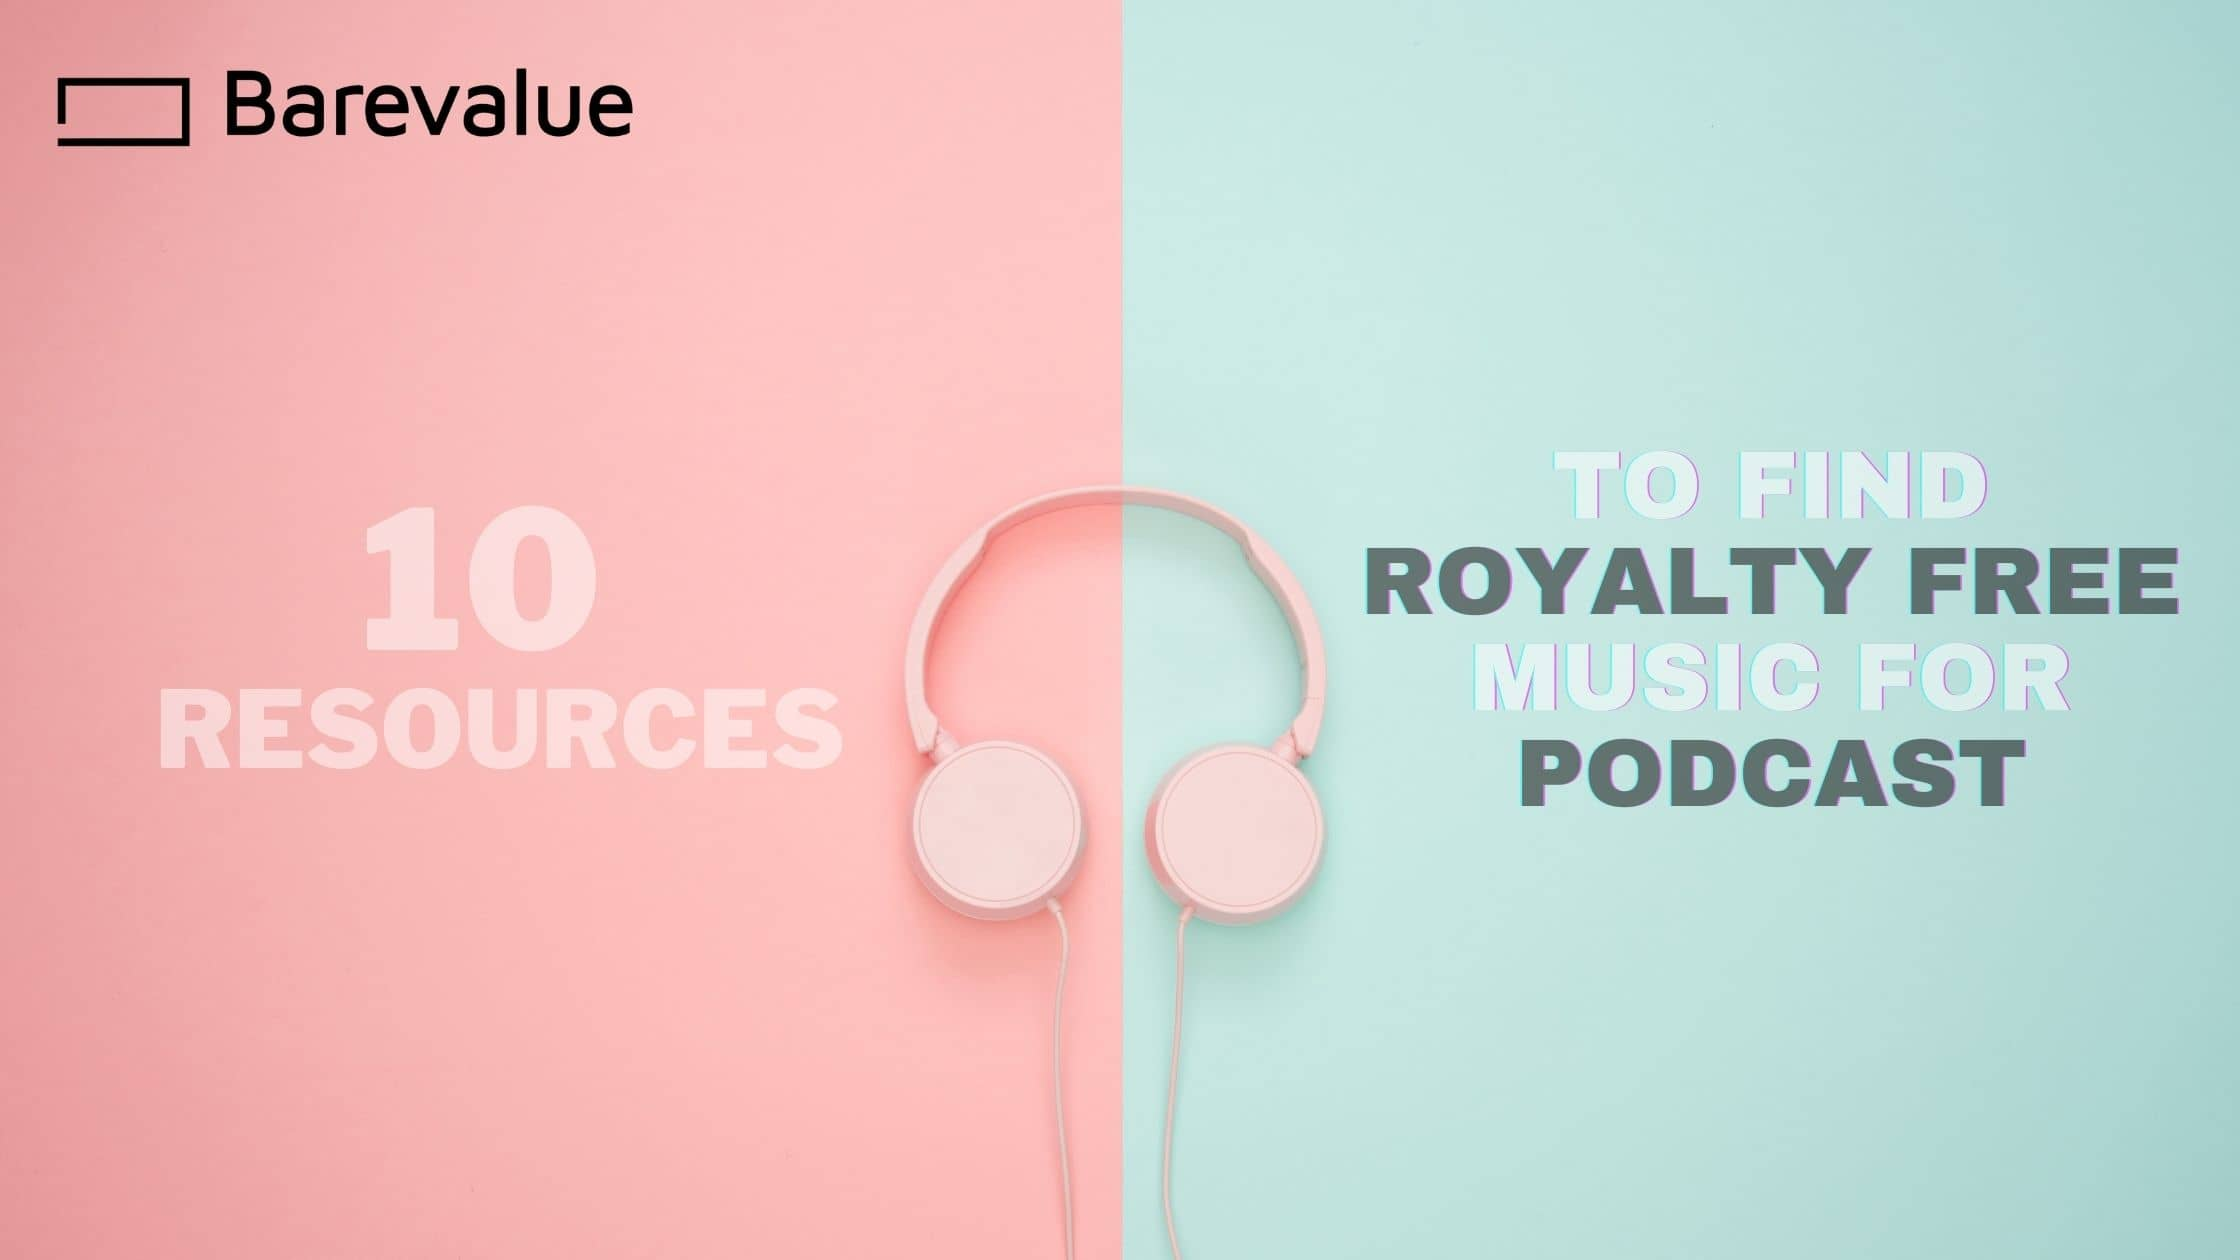 10 Resources to Find Royalty-Free Music for Podcast